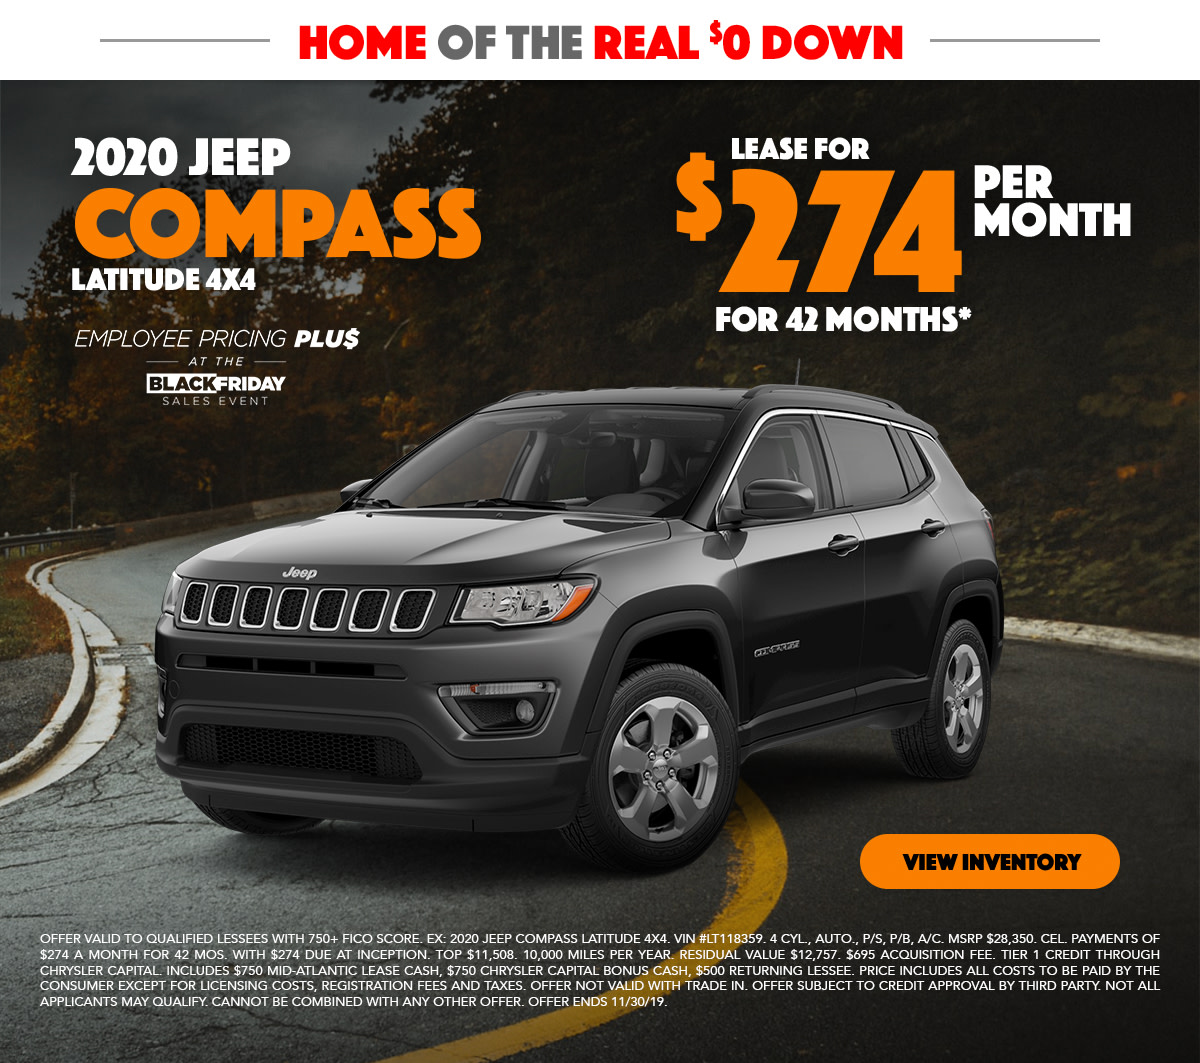 2019 Jeep Compass Lease Special